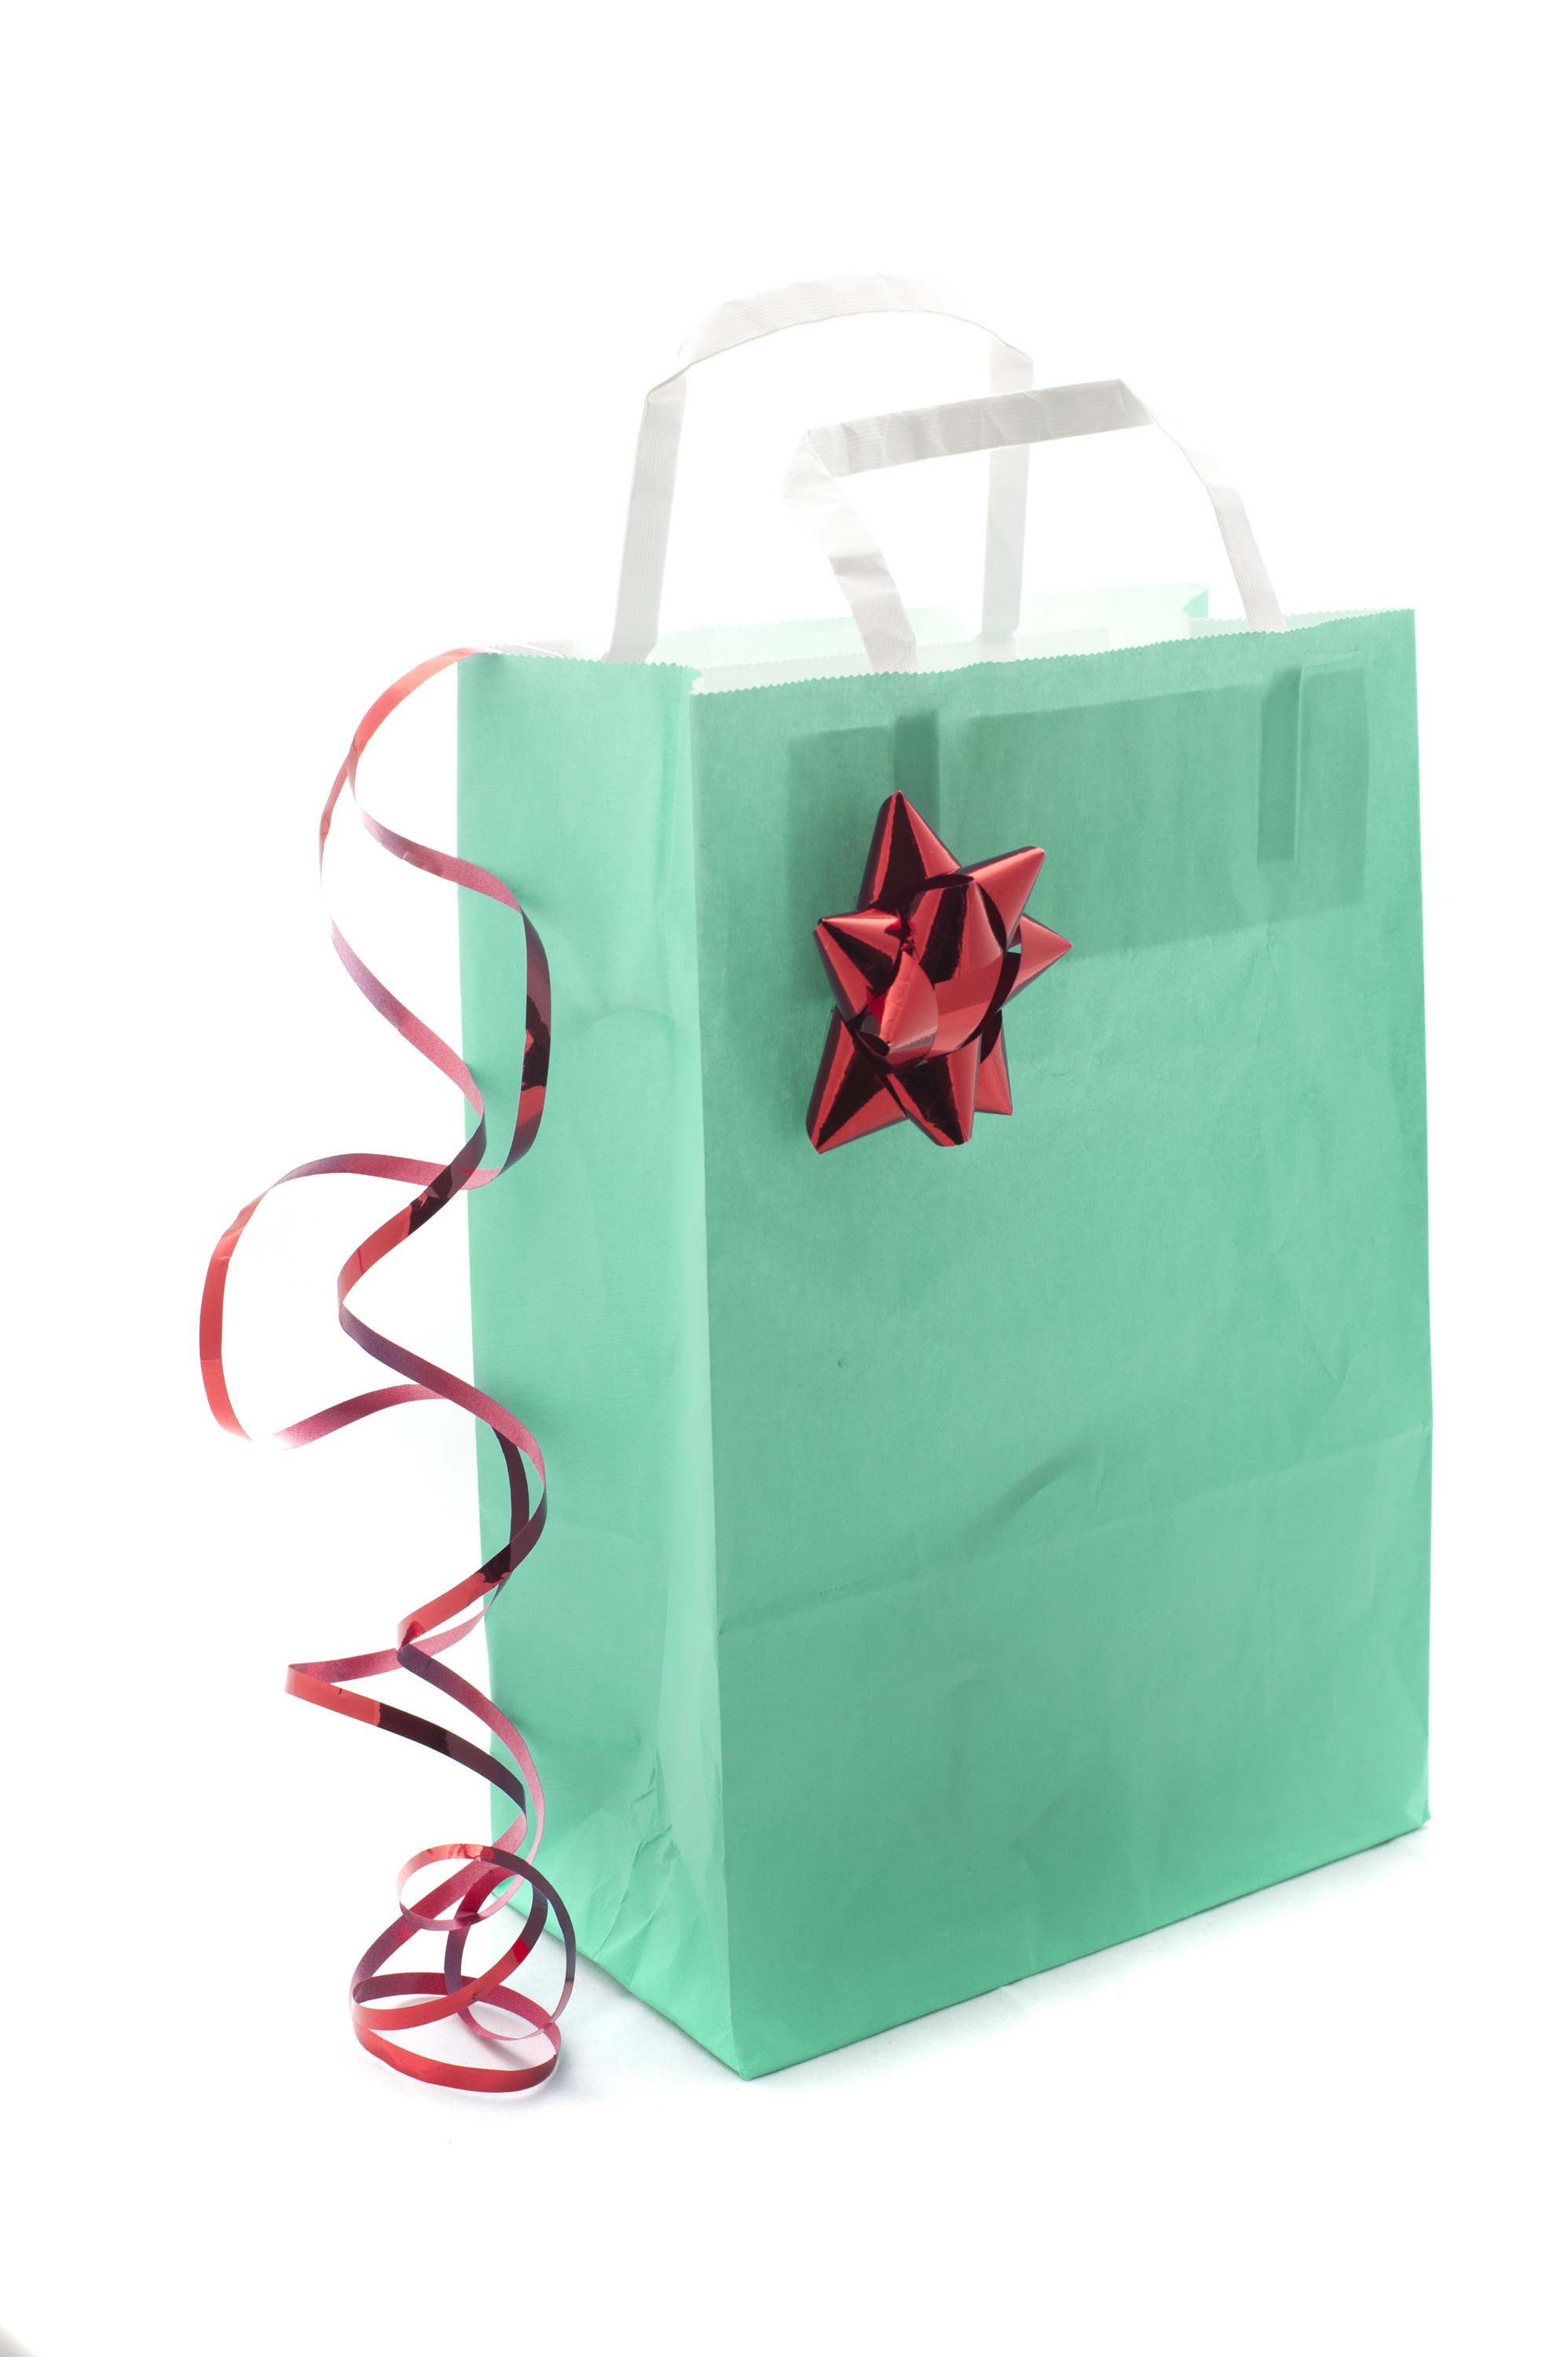 Pretty blue Christmas shopping bag decorated with a shiny metallic red bow and coiled ribbon with a blank side with copyspace for your message or advertisement, on white